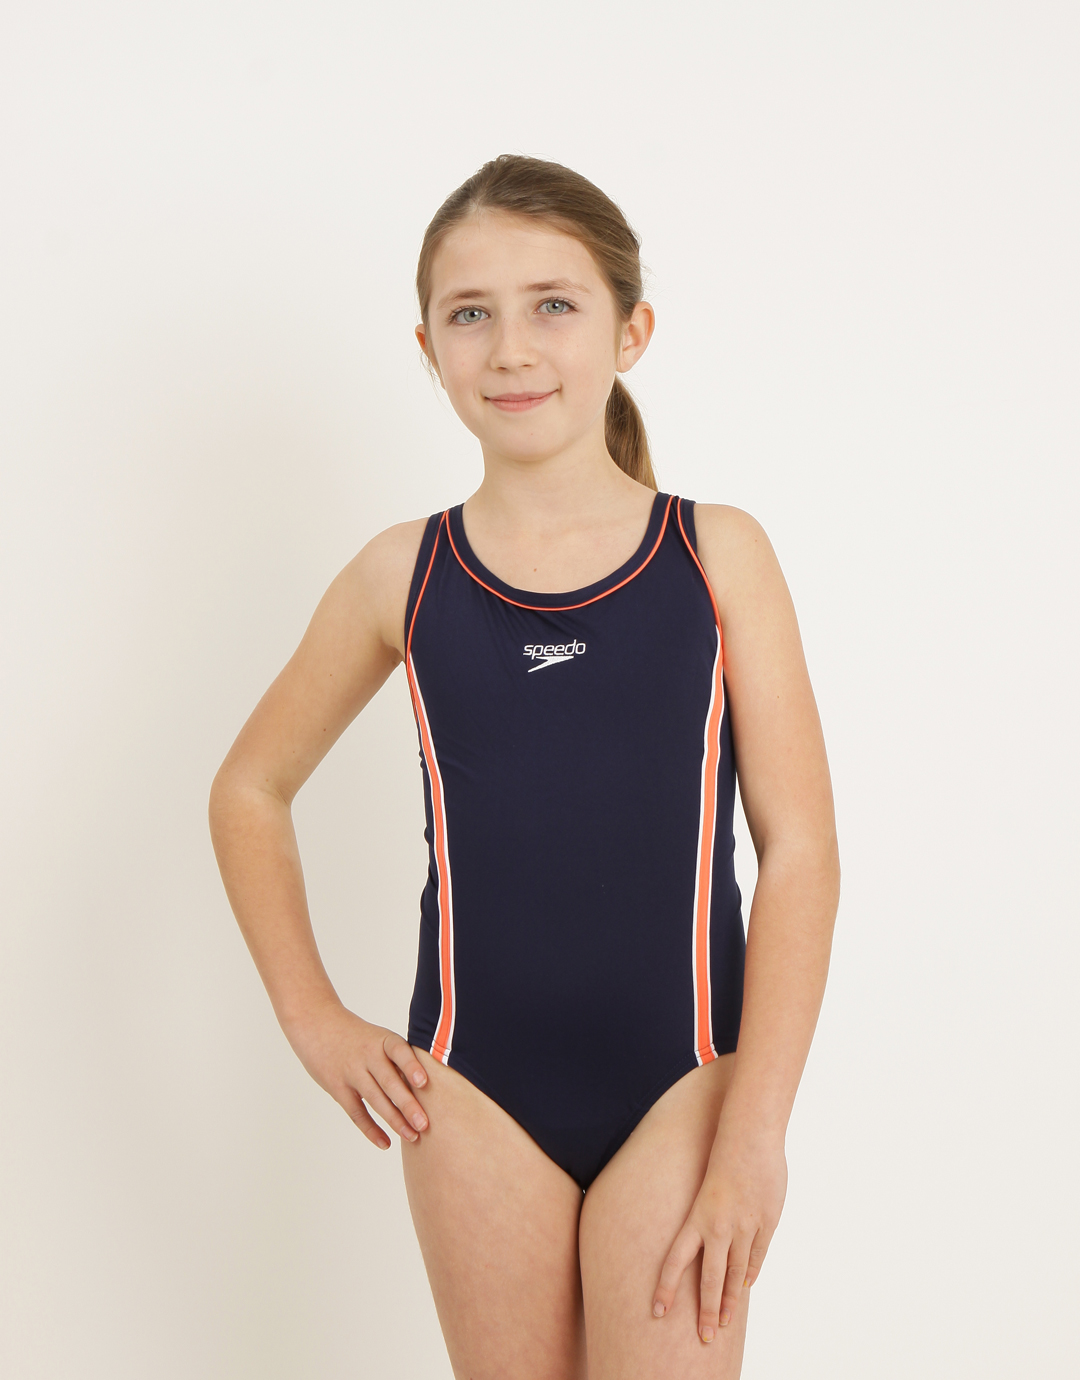 The Healthier Swimwear for Children